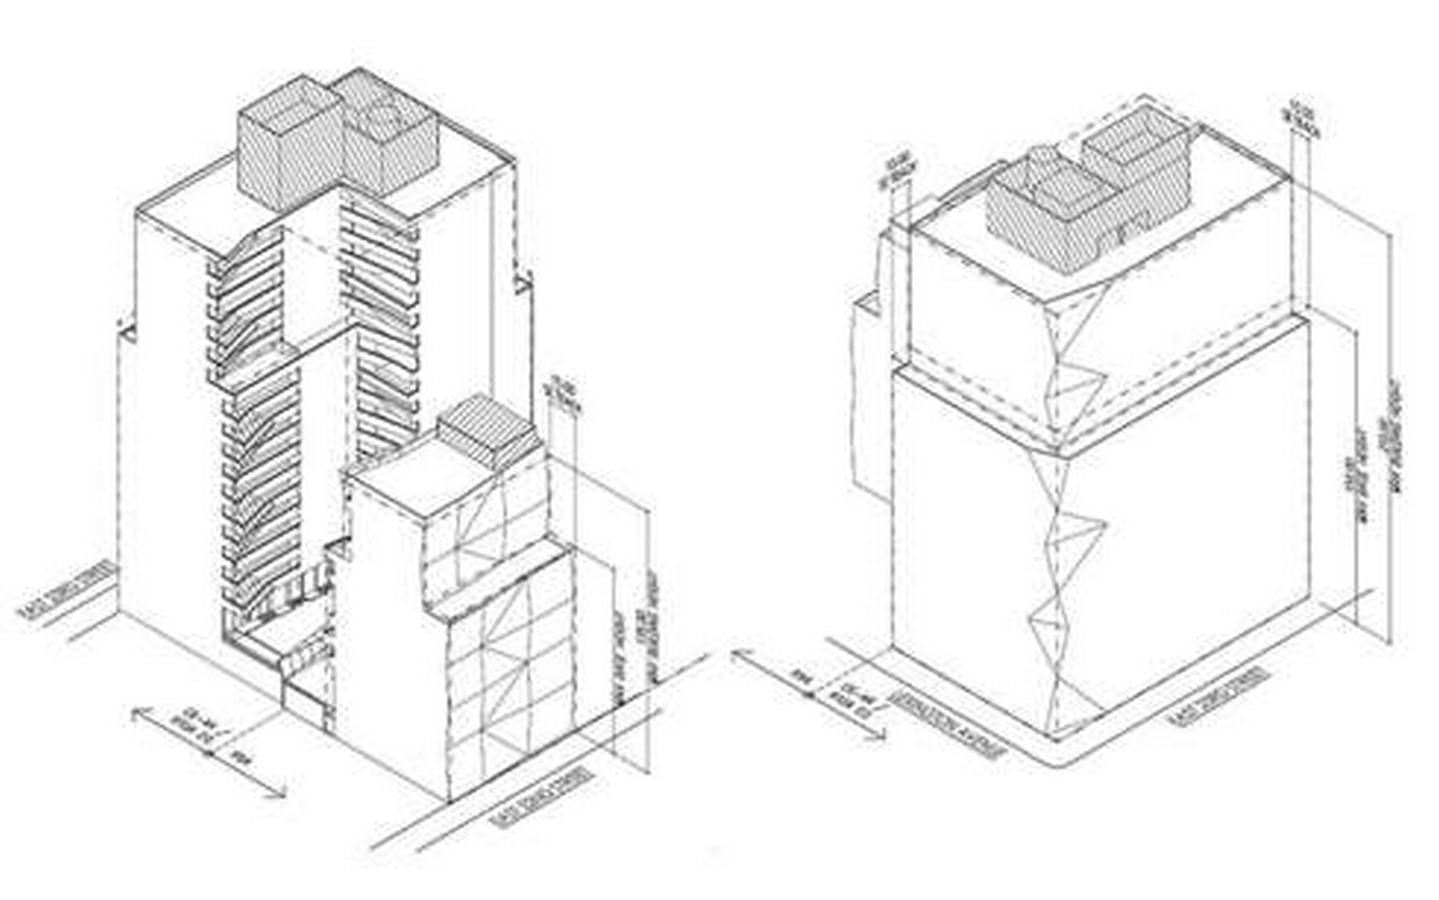 121 East 22nd by Rem Koolhaas: Merging history and modernity - Sheet5